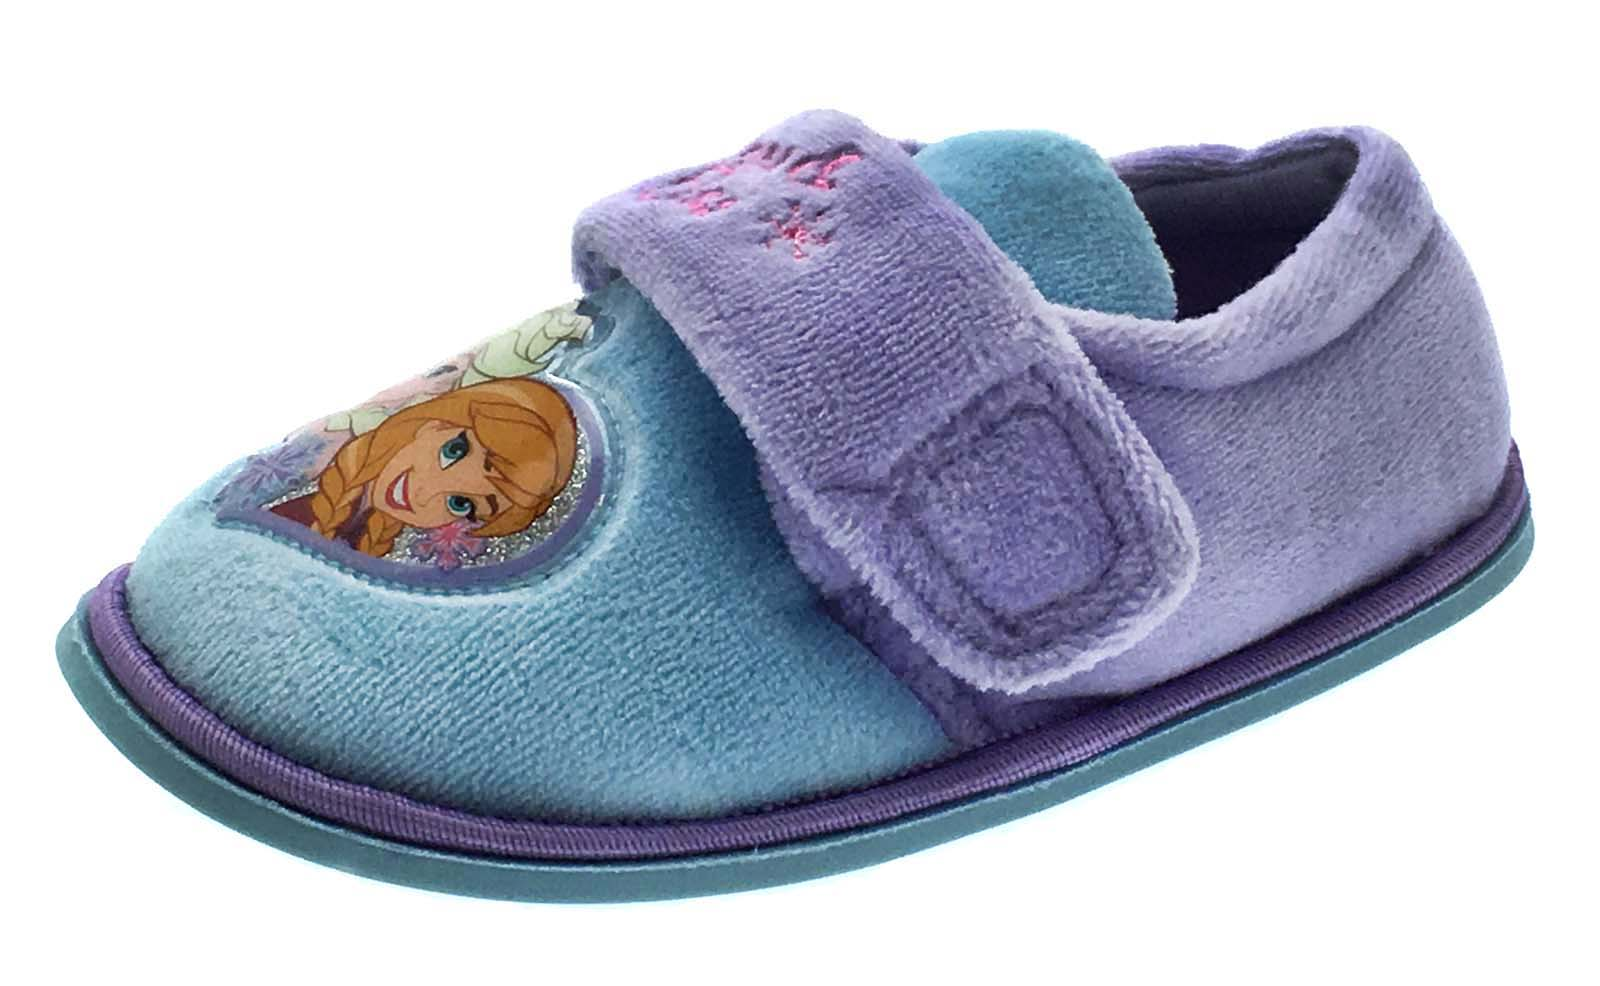 Shoes for girls with price-1148